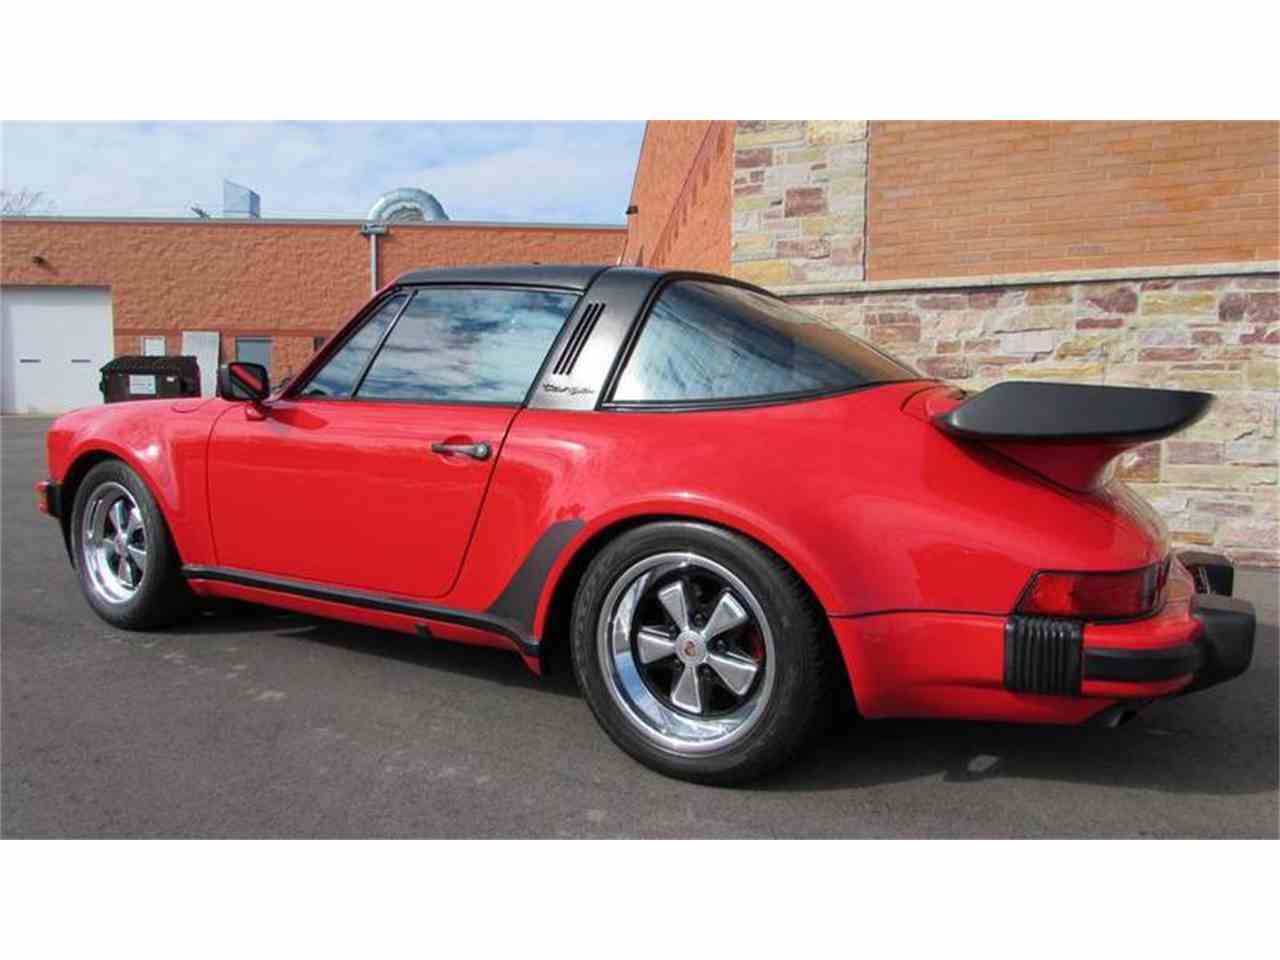 Large Picture of '86 Porsche 911 located in Big Bend Wisconsin Auction Vehicle - MBV8